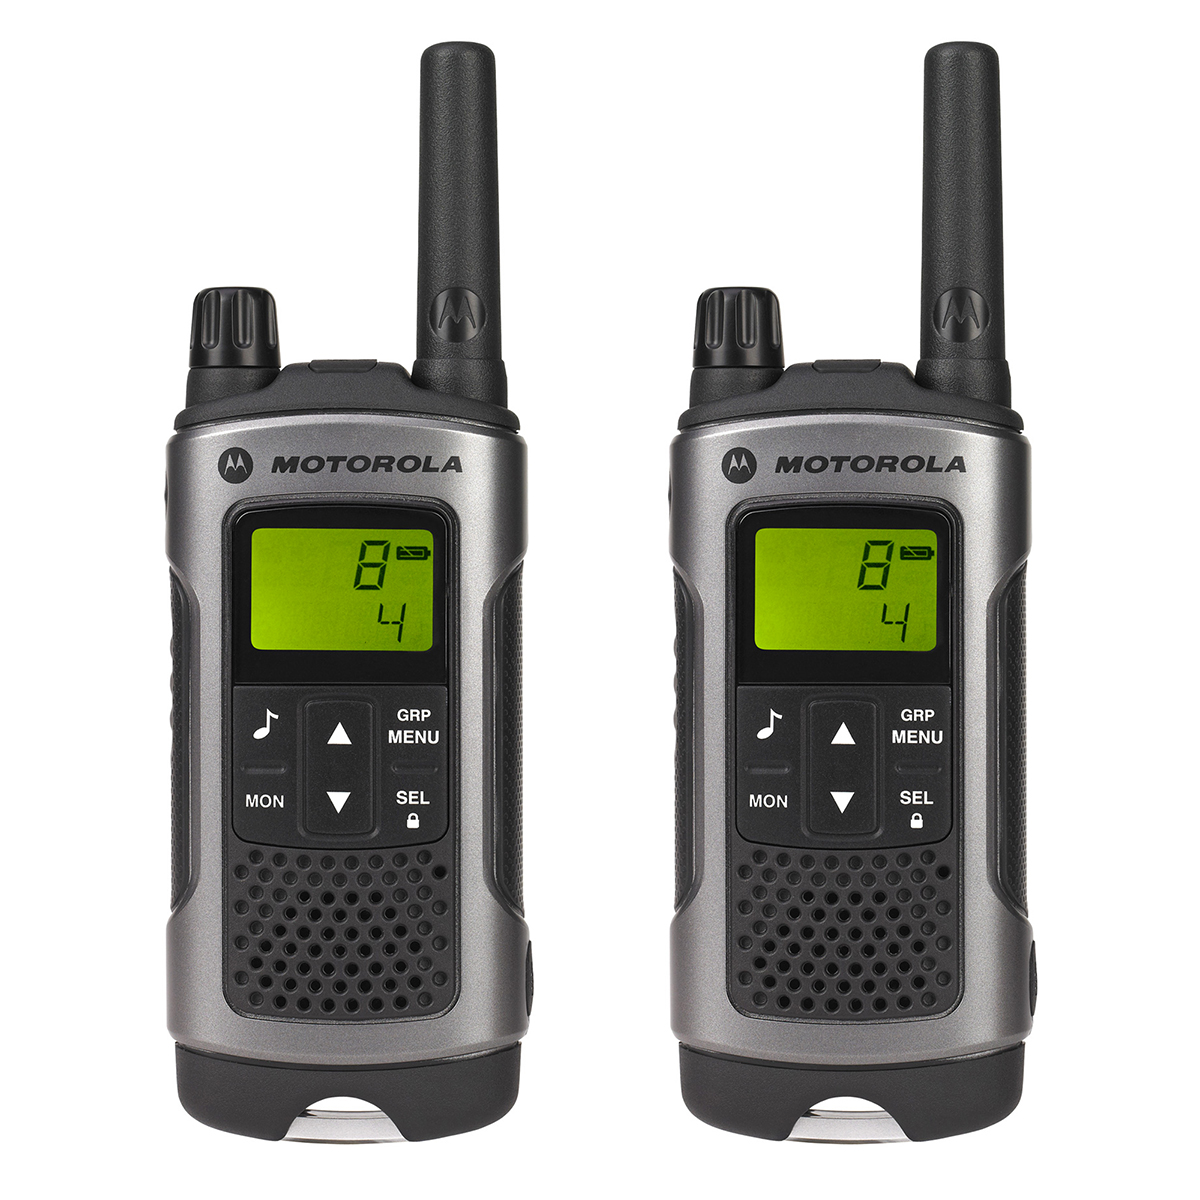 Motorola TLKR T80 Walkie Talkie Radio - 1 Pair